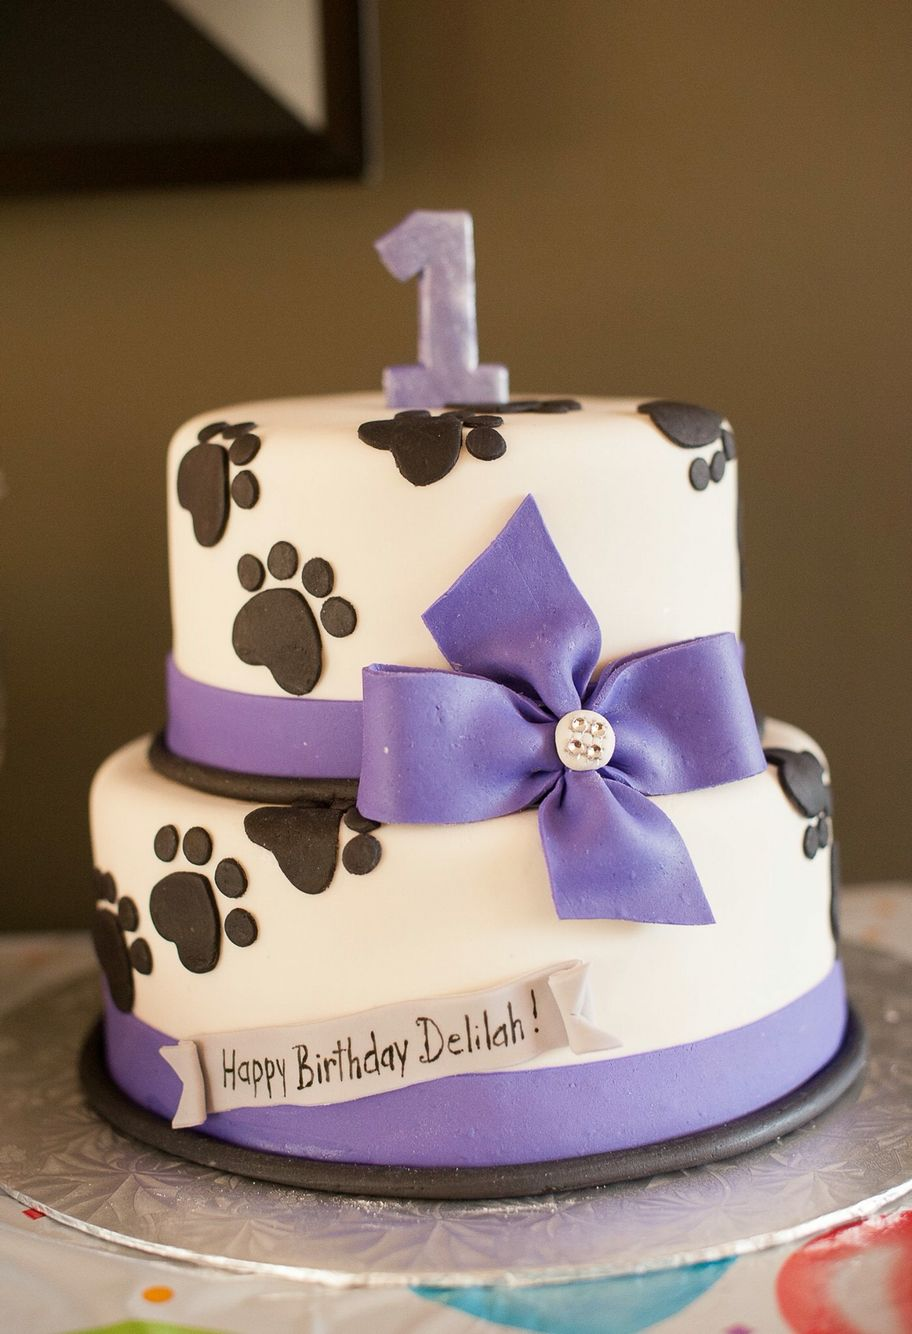 Doggies first birthday cake for the humans Family presents